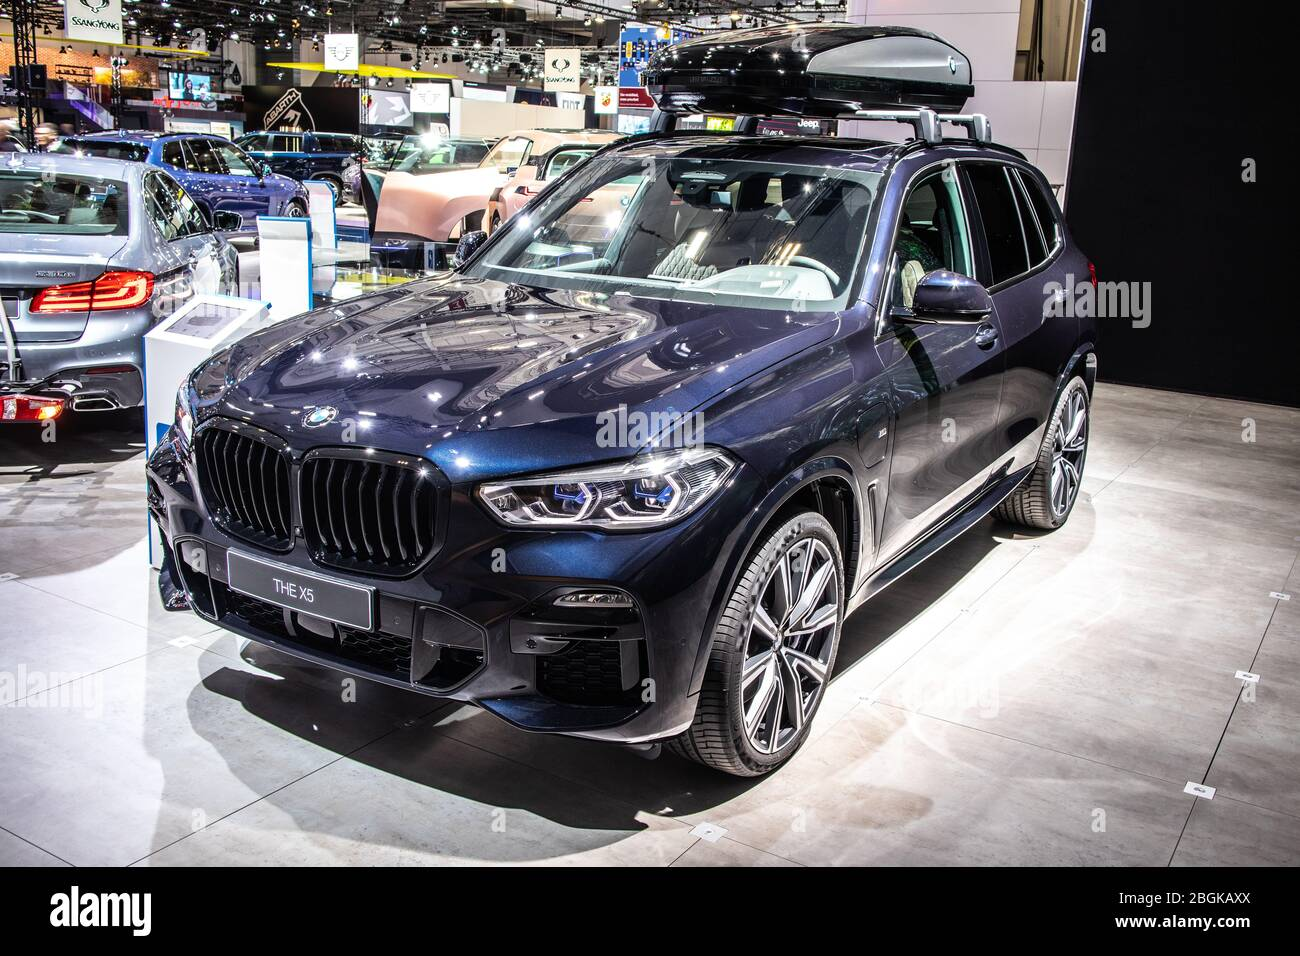 Brussels Belgium Jan 2020 Bmw X5 45e With Synchronous Electric Motor Brussels Motor Show 4th Gen G05 Suv Manufactured And Marketed By Bmw Stock Photo Alamy